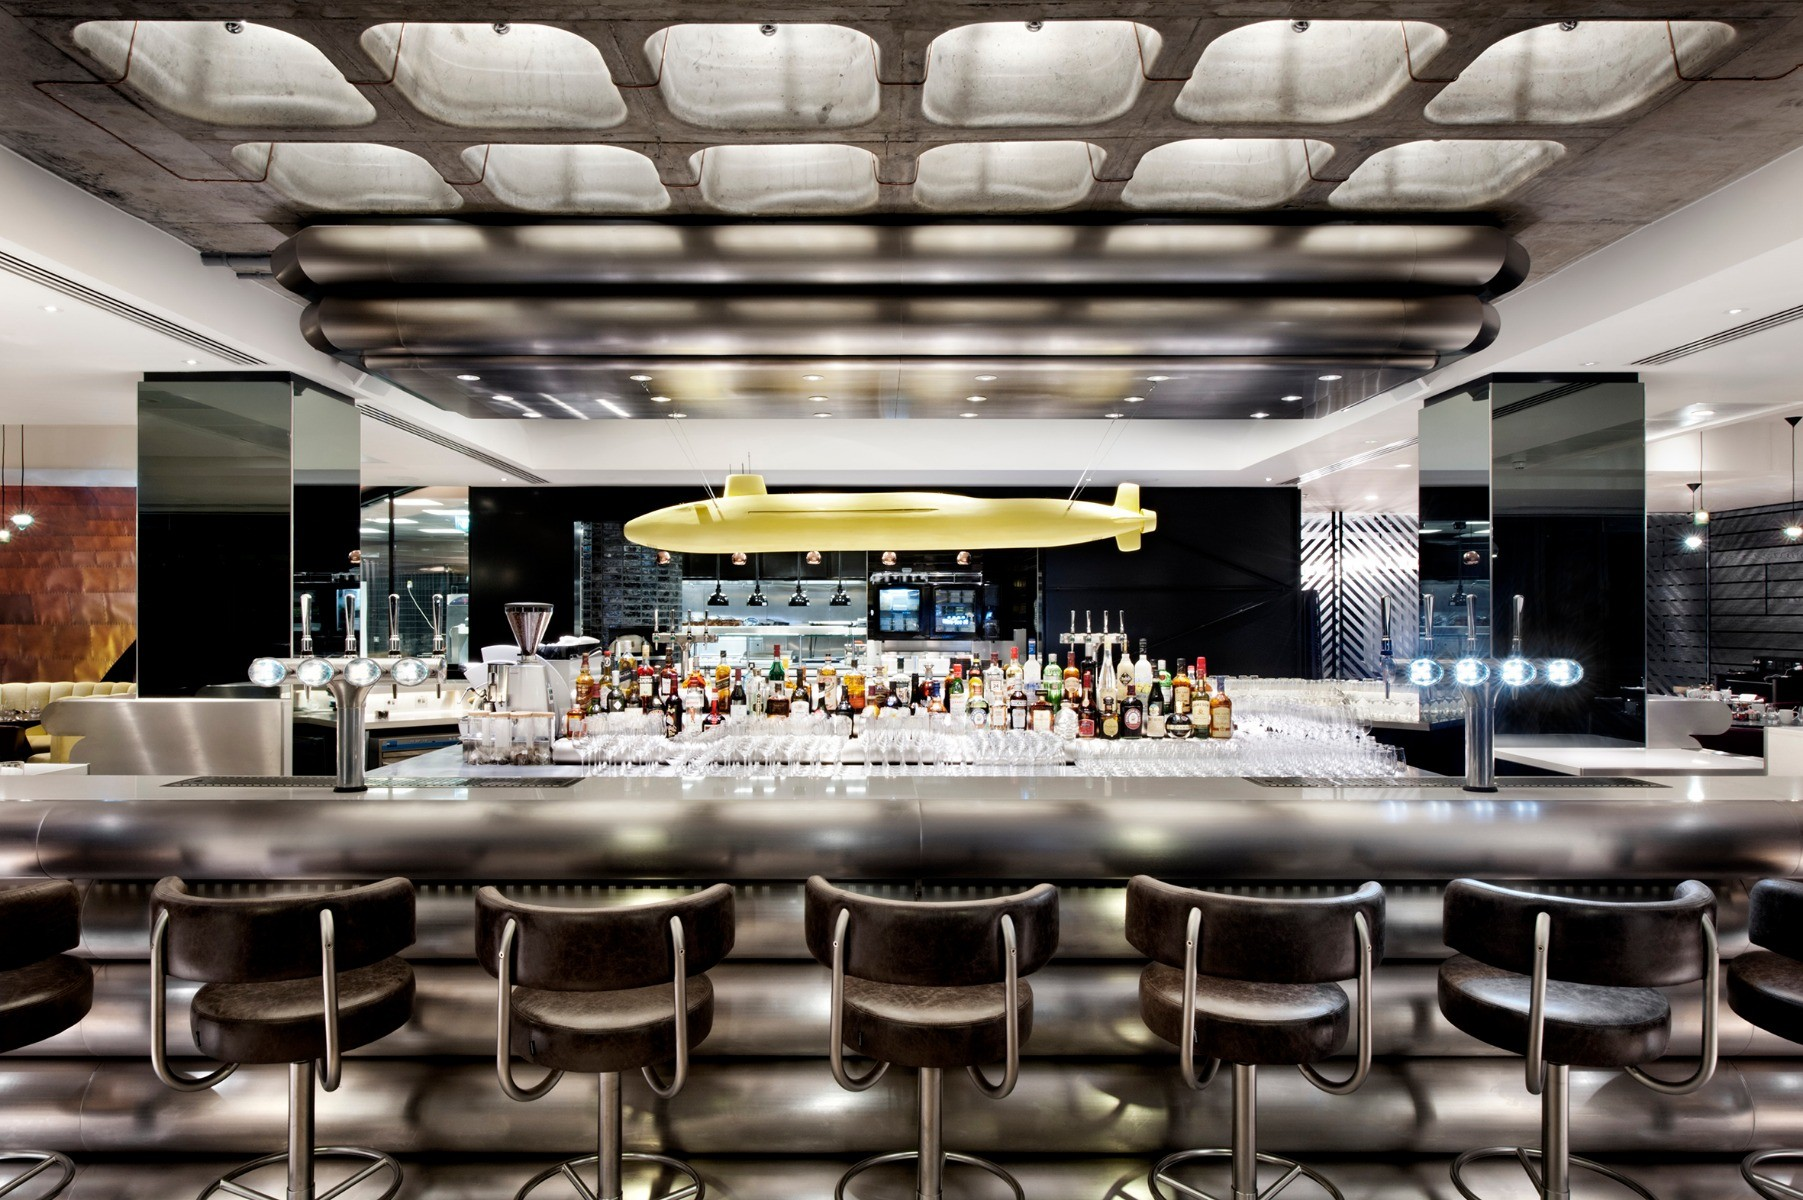 Mondrian Hotel in London, interiors by Tom Dixon's Design Research Studio.